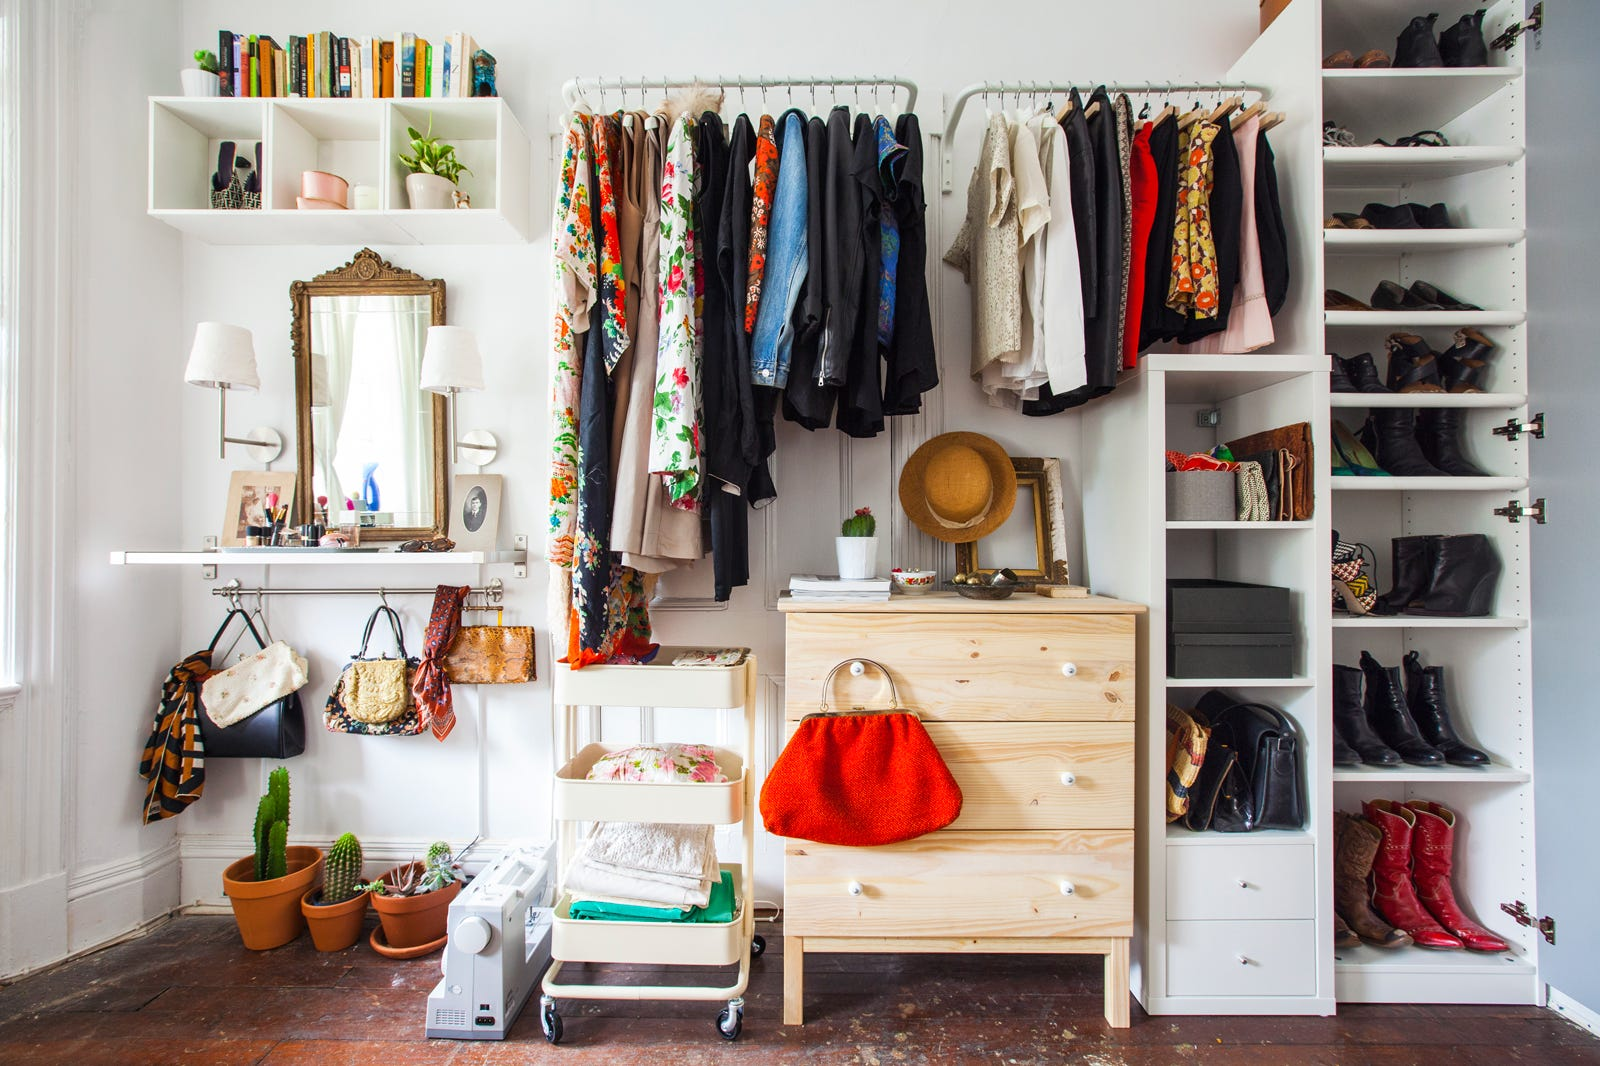 Closet Organization Ideas Clothing Storage Solutions: no closet hanging solutions